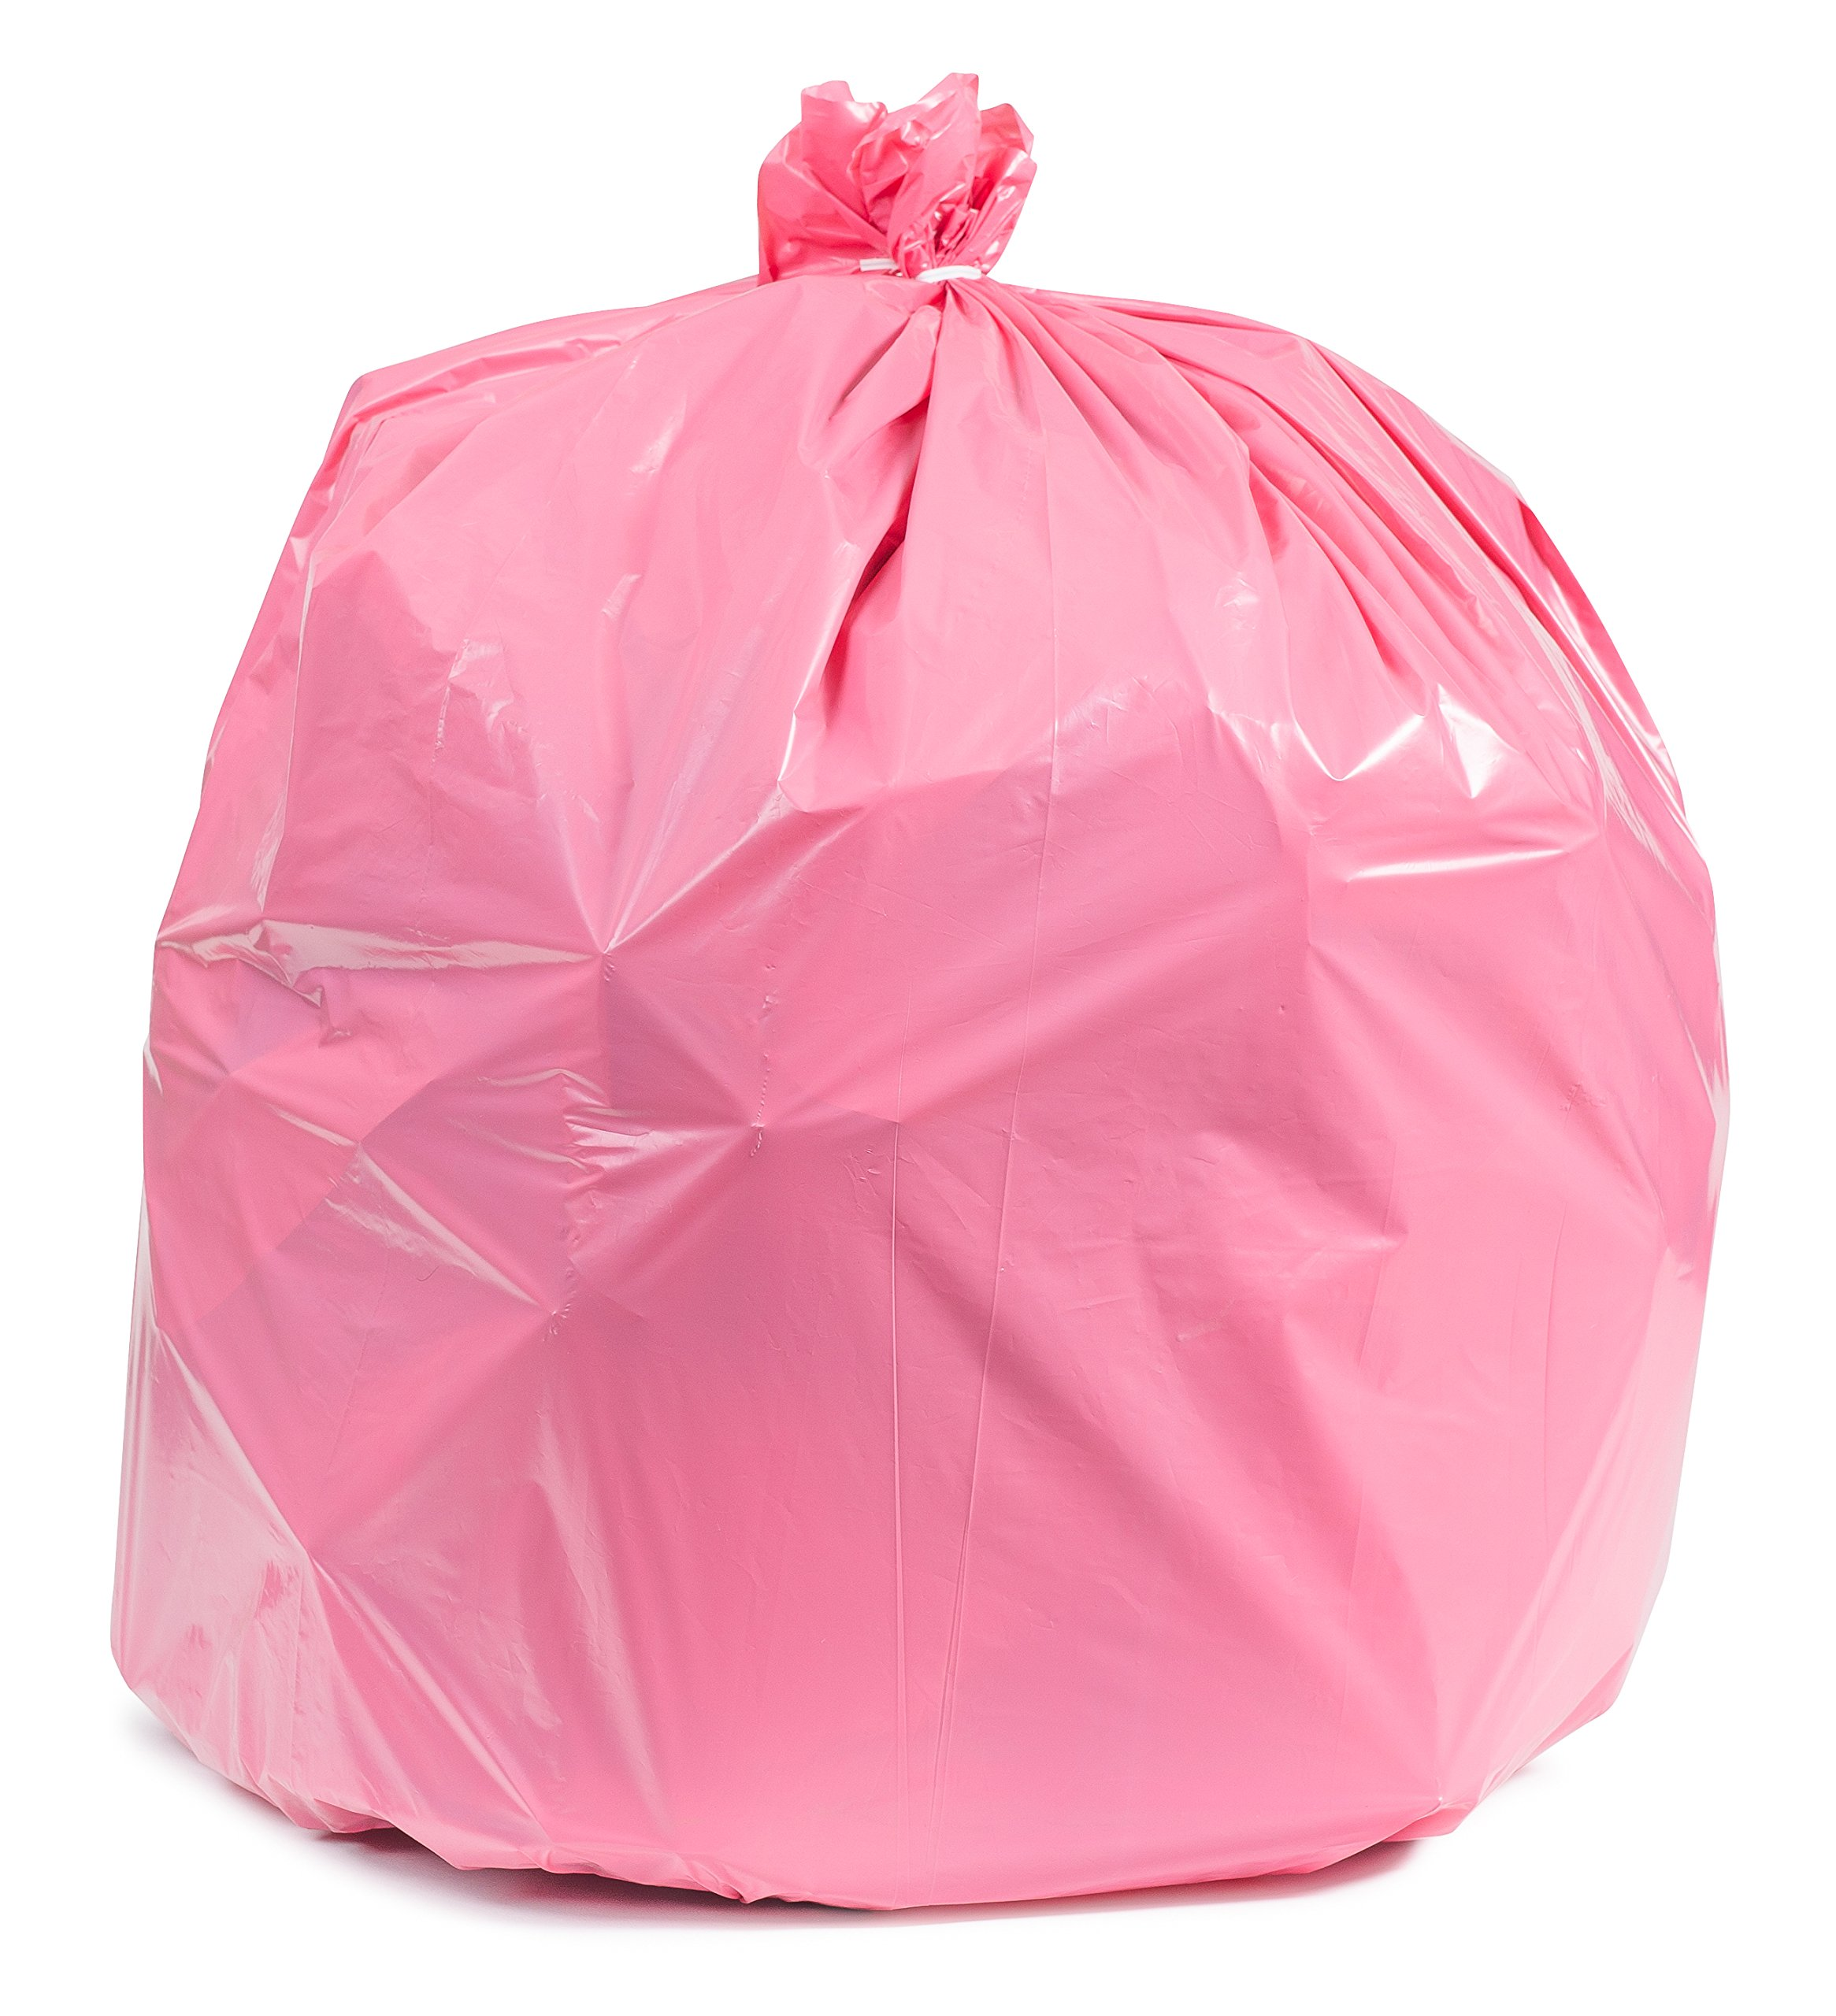 31-33 Gallon Trash Bags - 100/ case - Pink by Plasticplace